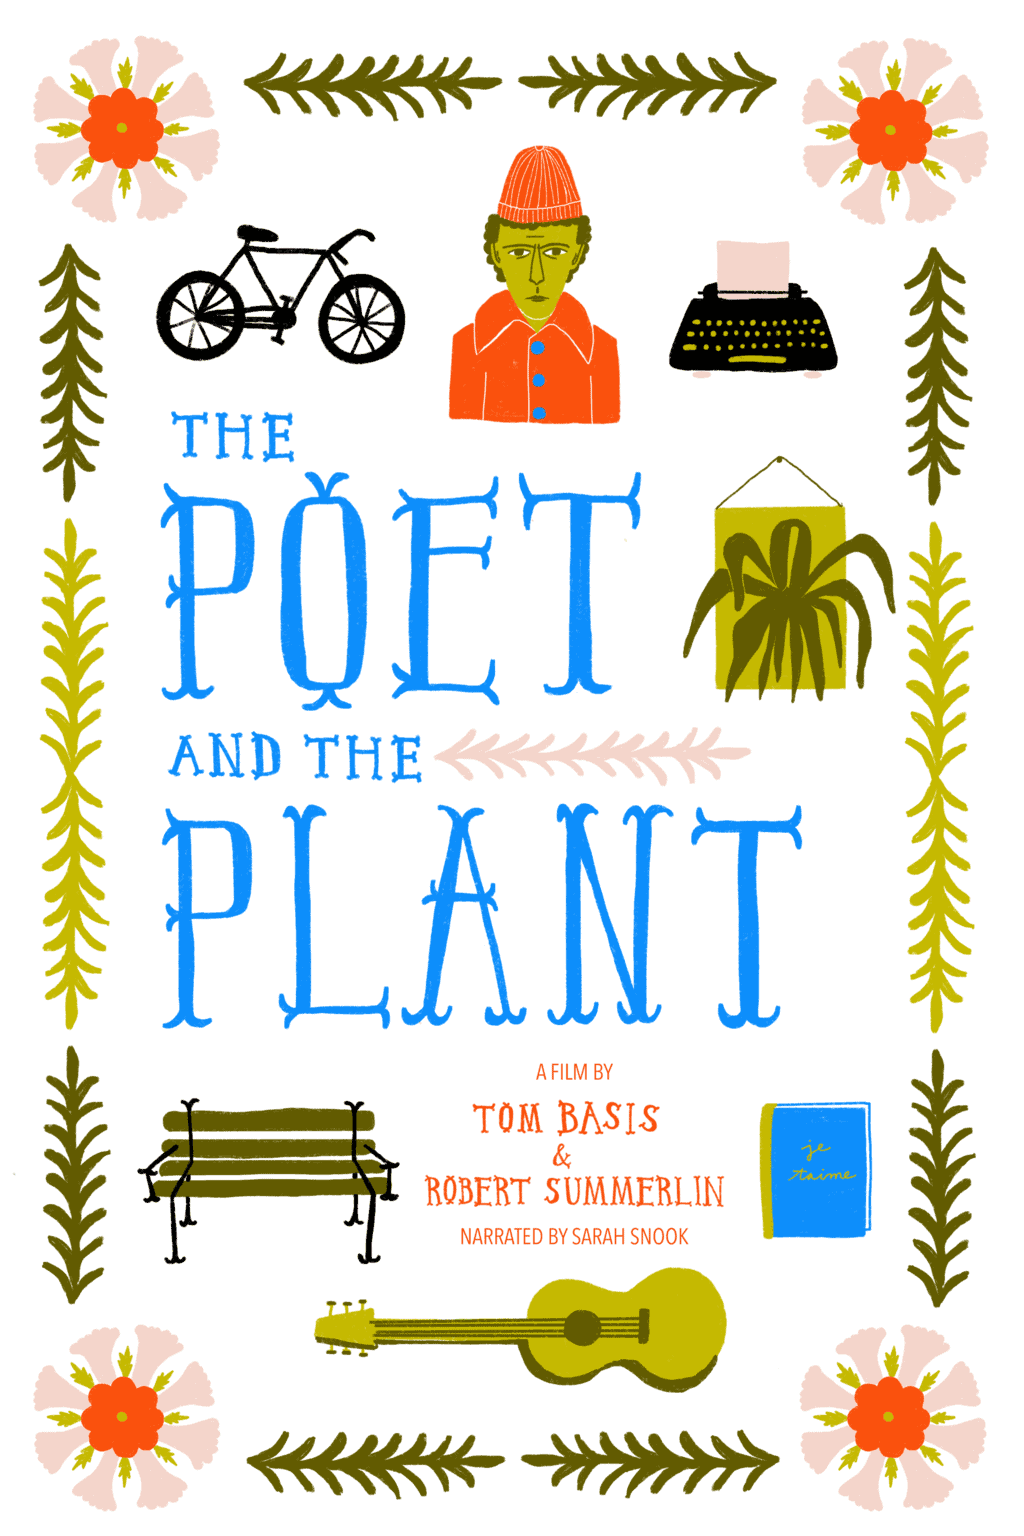 The Poet and the Plant: Review